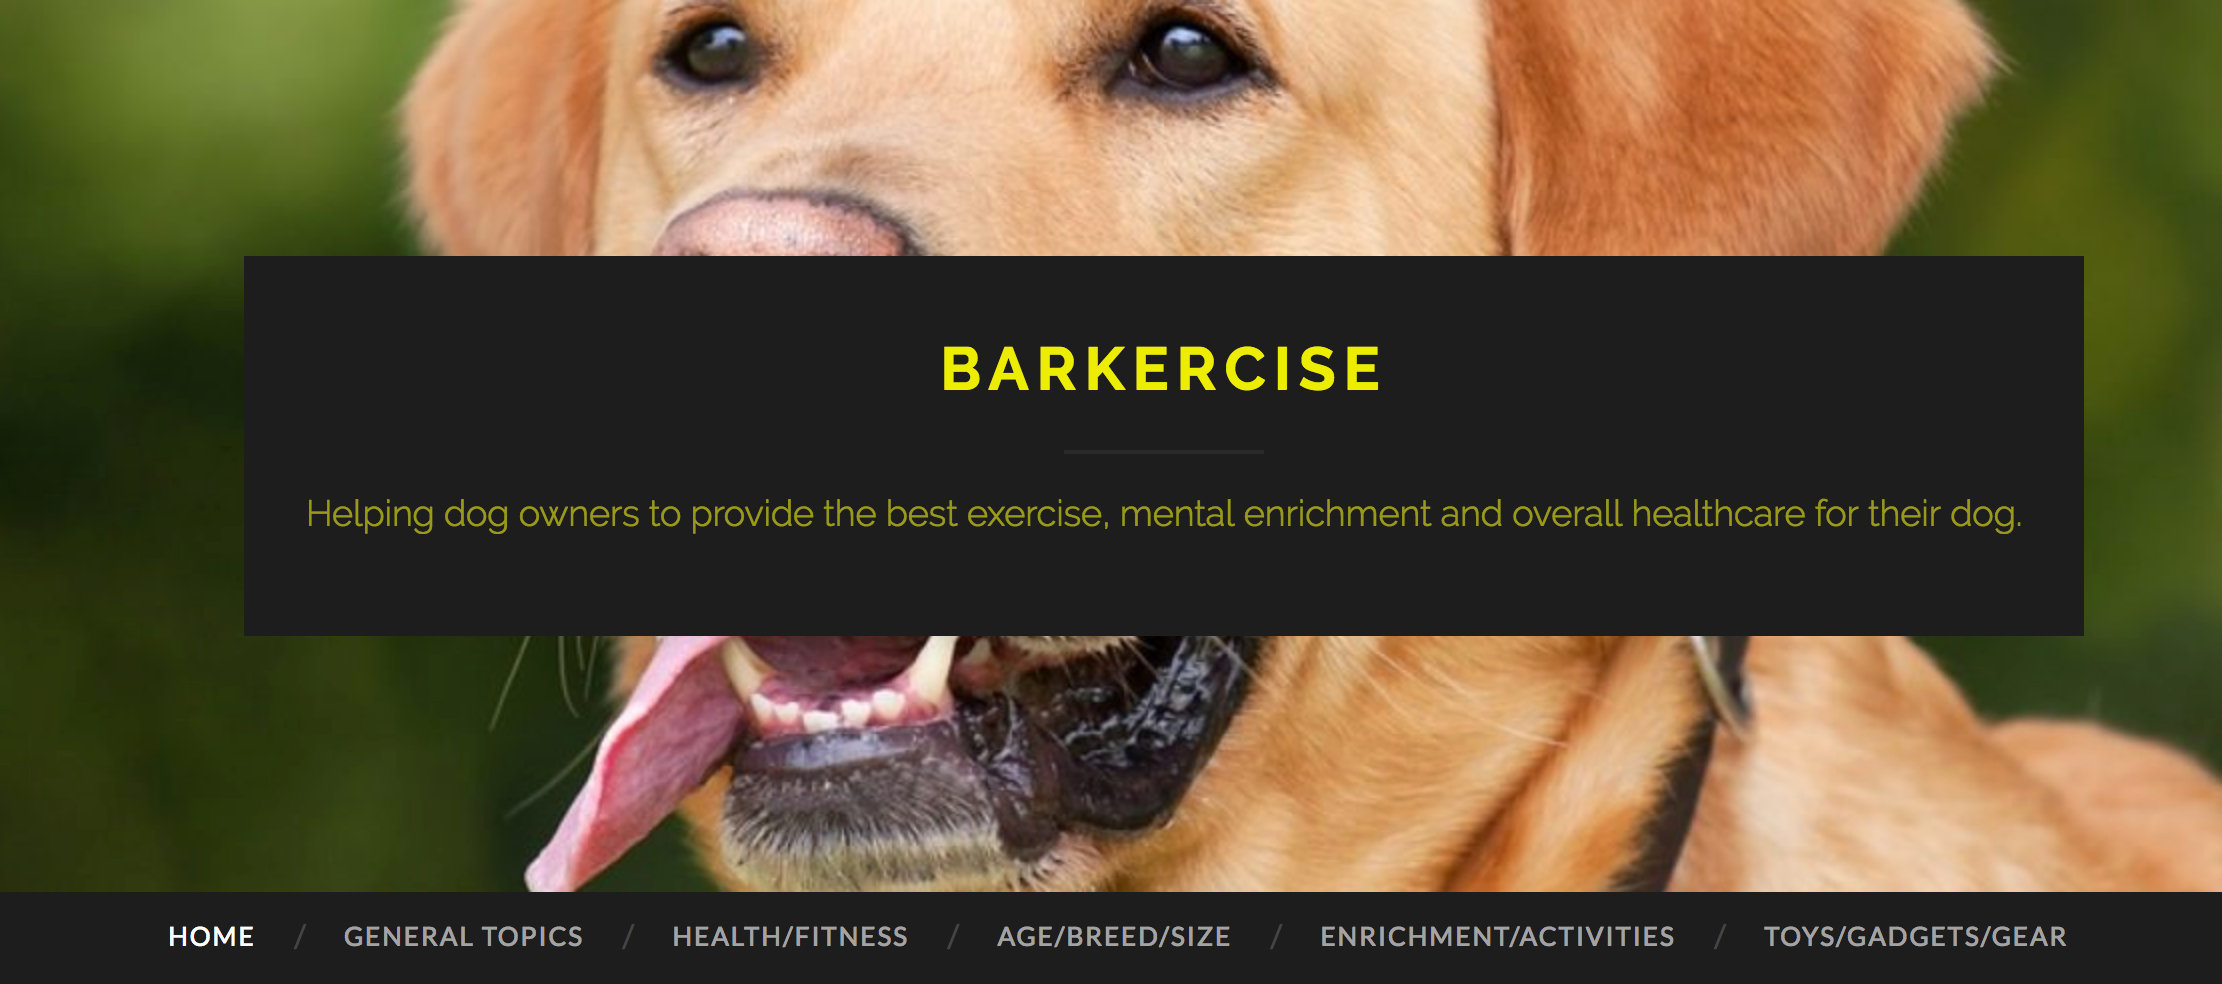 barkercise dot com homepage